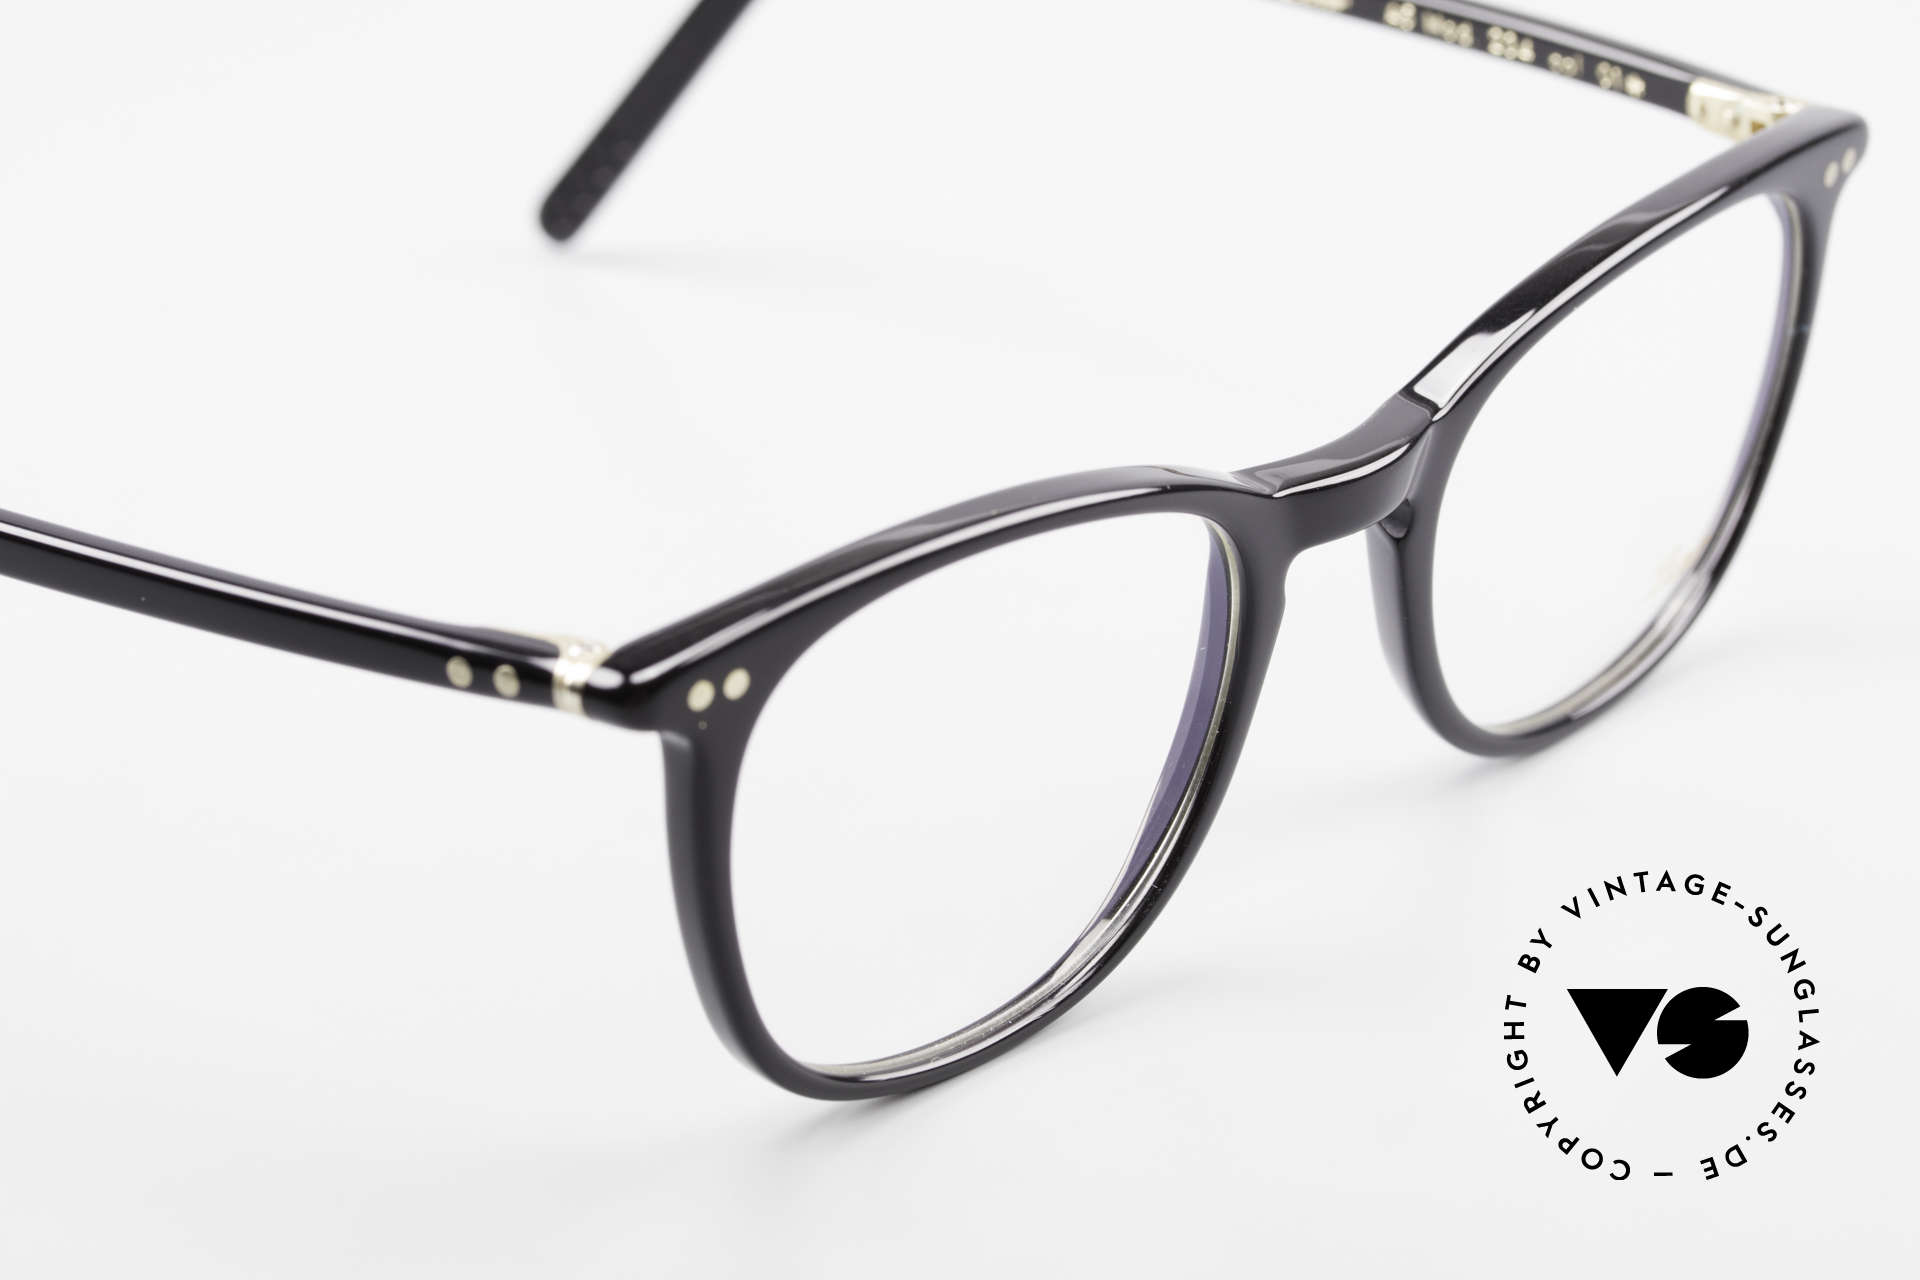 Lunor A5 234 Classic Timeless Eyeglasses, the LUNOR frame comes with an original case by LUNOR, Made for Men and Women